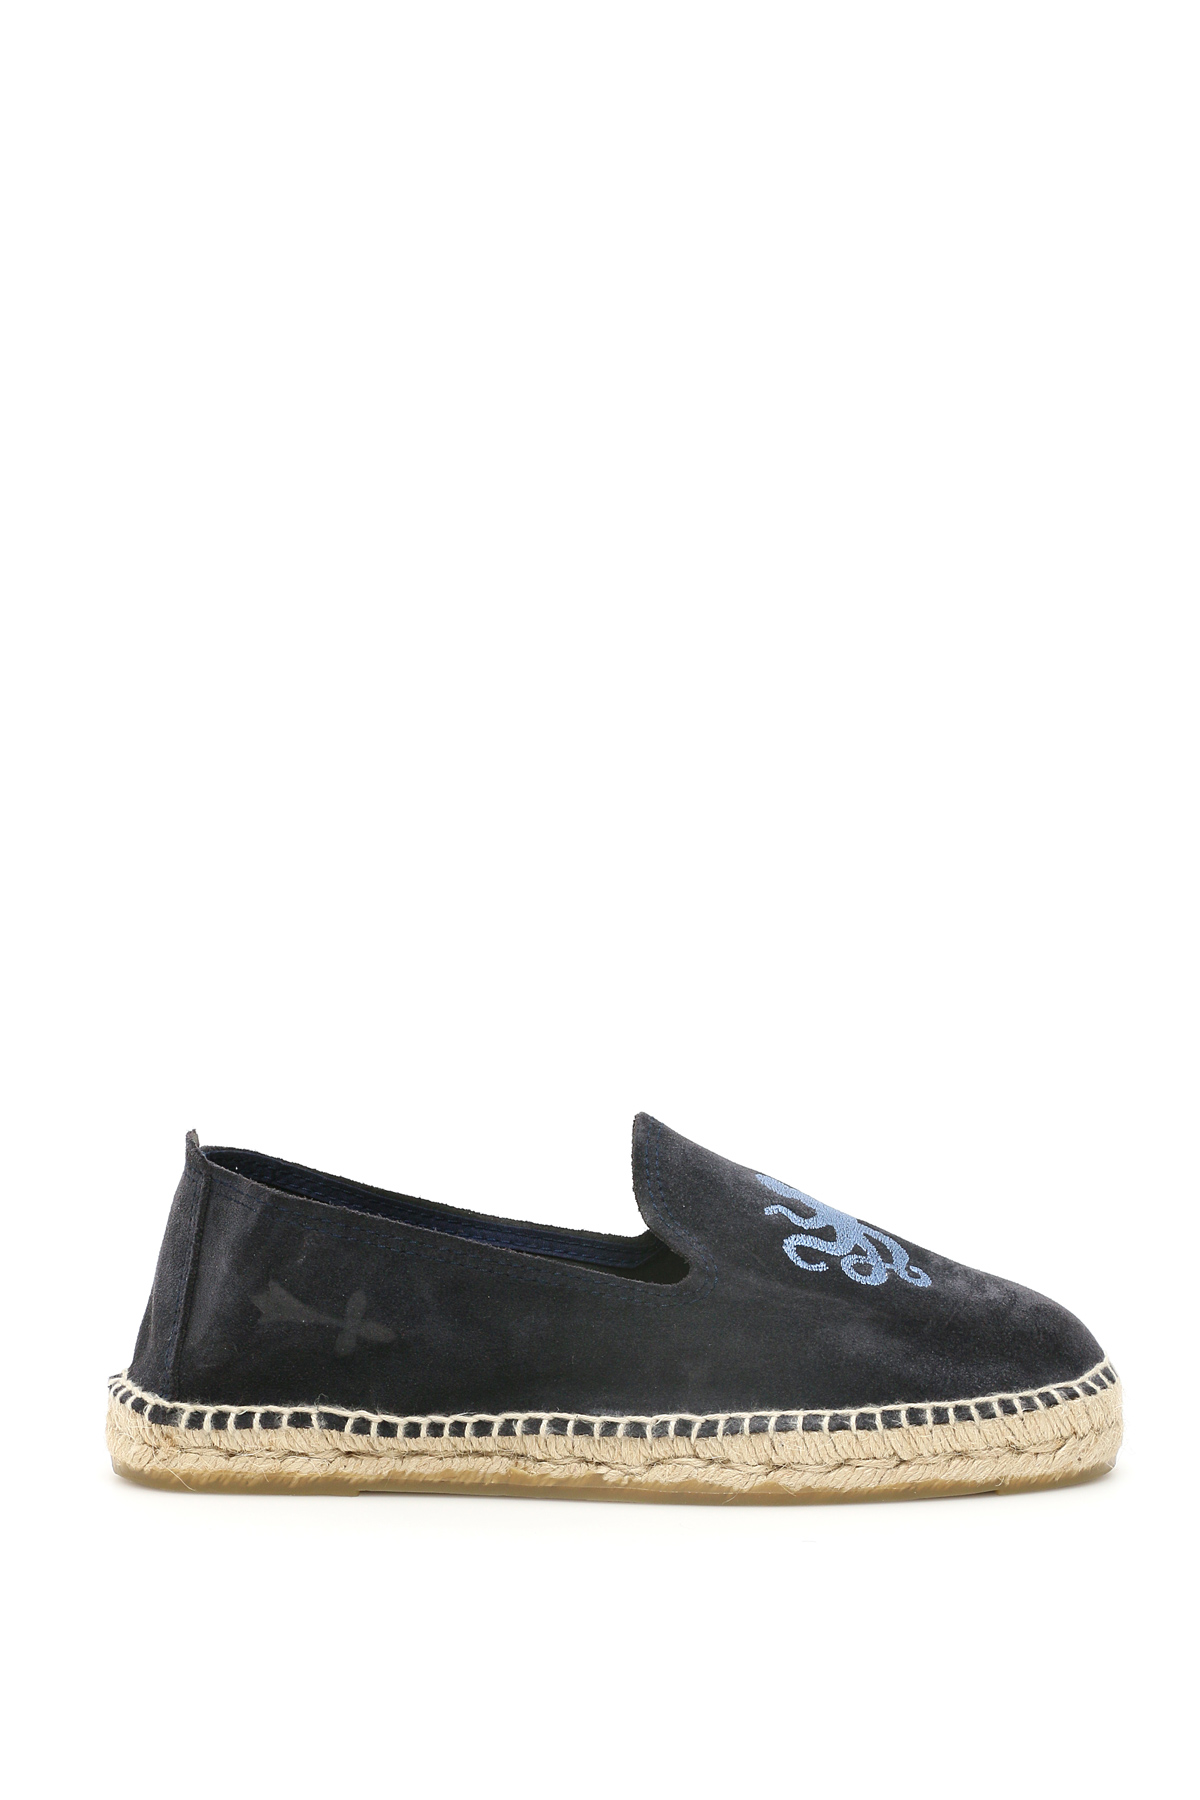 MANEBI PALM SPRINGS SUEDE ESPADRILLES 40 Blue Leather